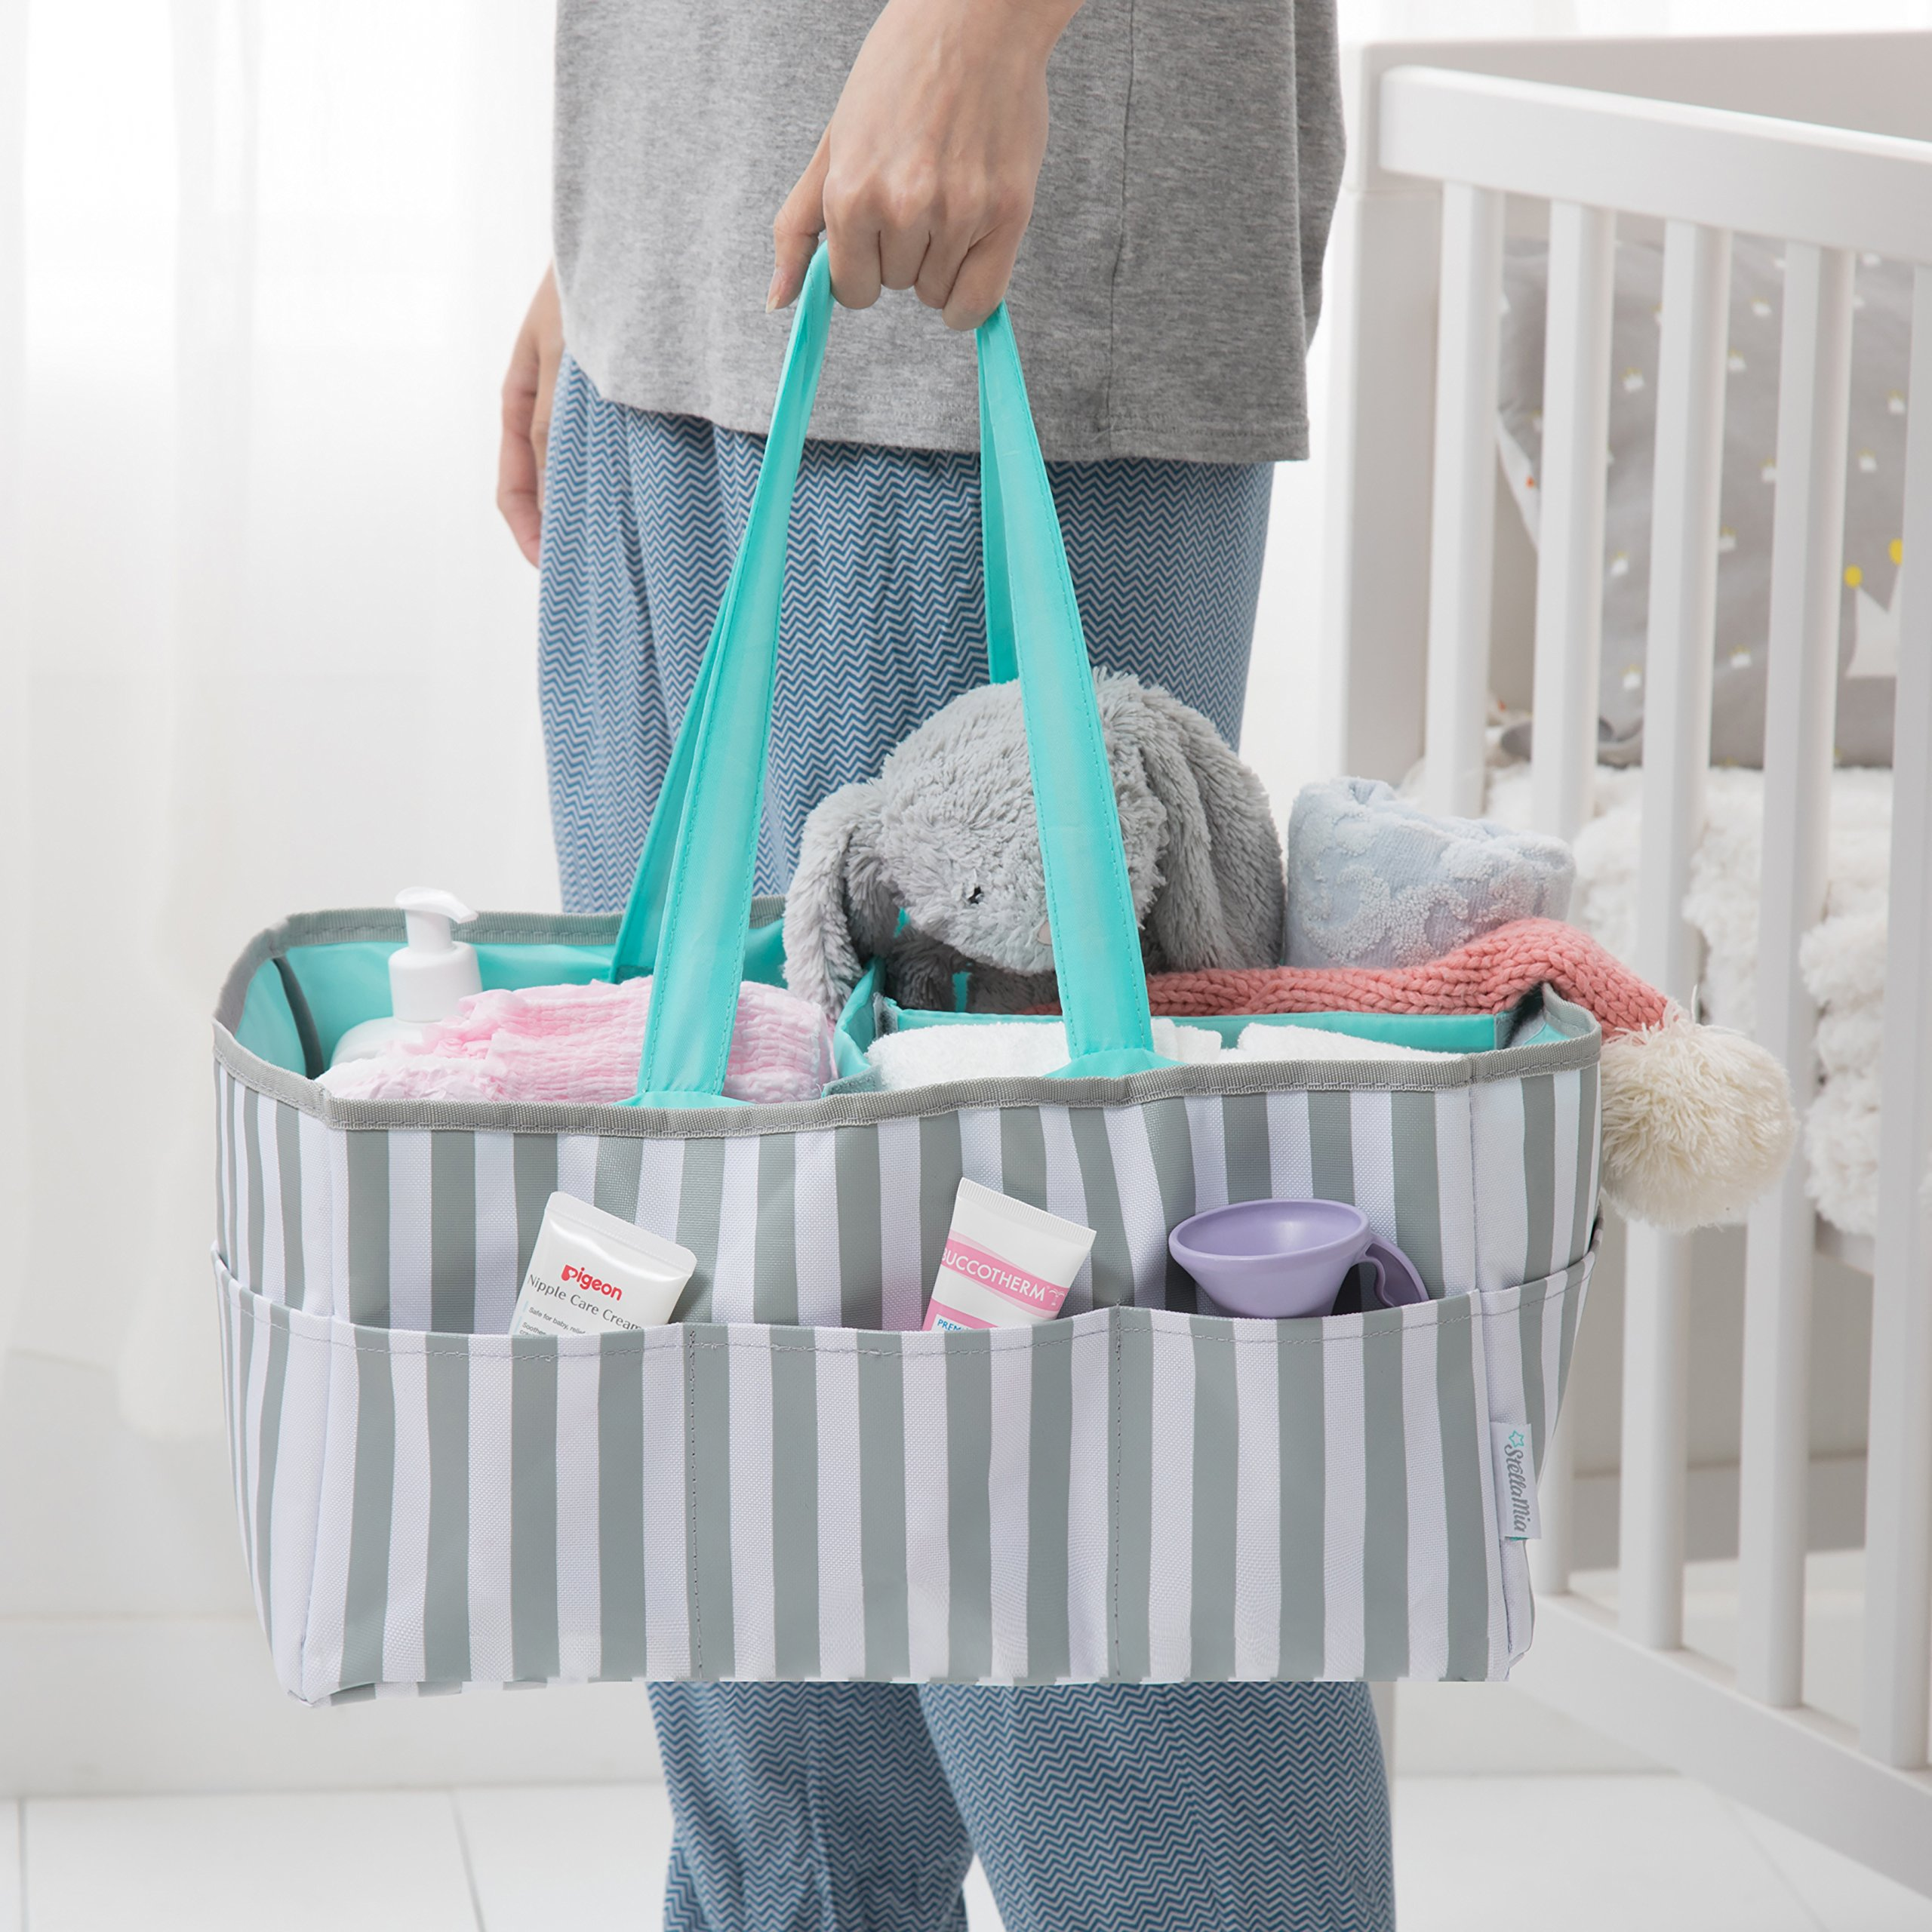 Stella Mia Diaper Caddy [Bonus Changing Pad] - Extra-Large Portable Nursery Diaper Stacker - Changing Table Organizer for Baby Essentials - Perfect Baby Shower Gift, Baby Registry Must Have by Stella Mia (Image #5)